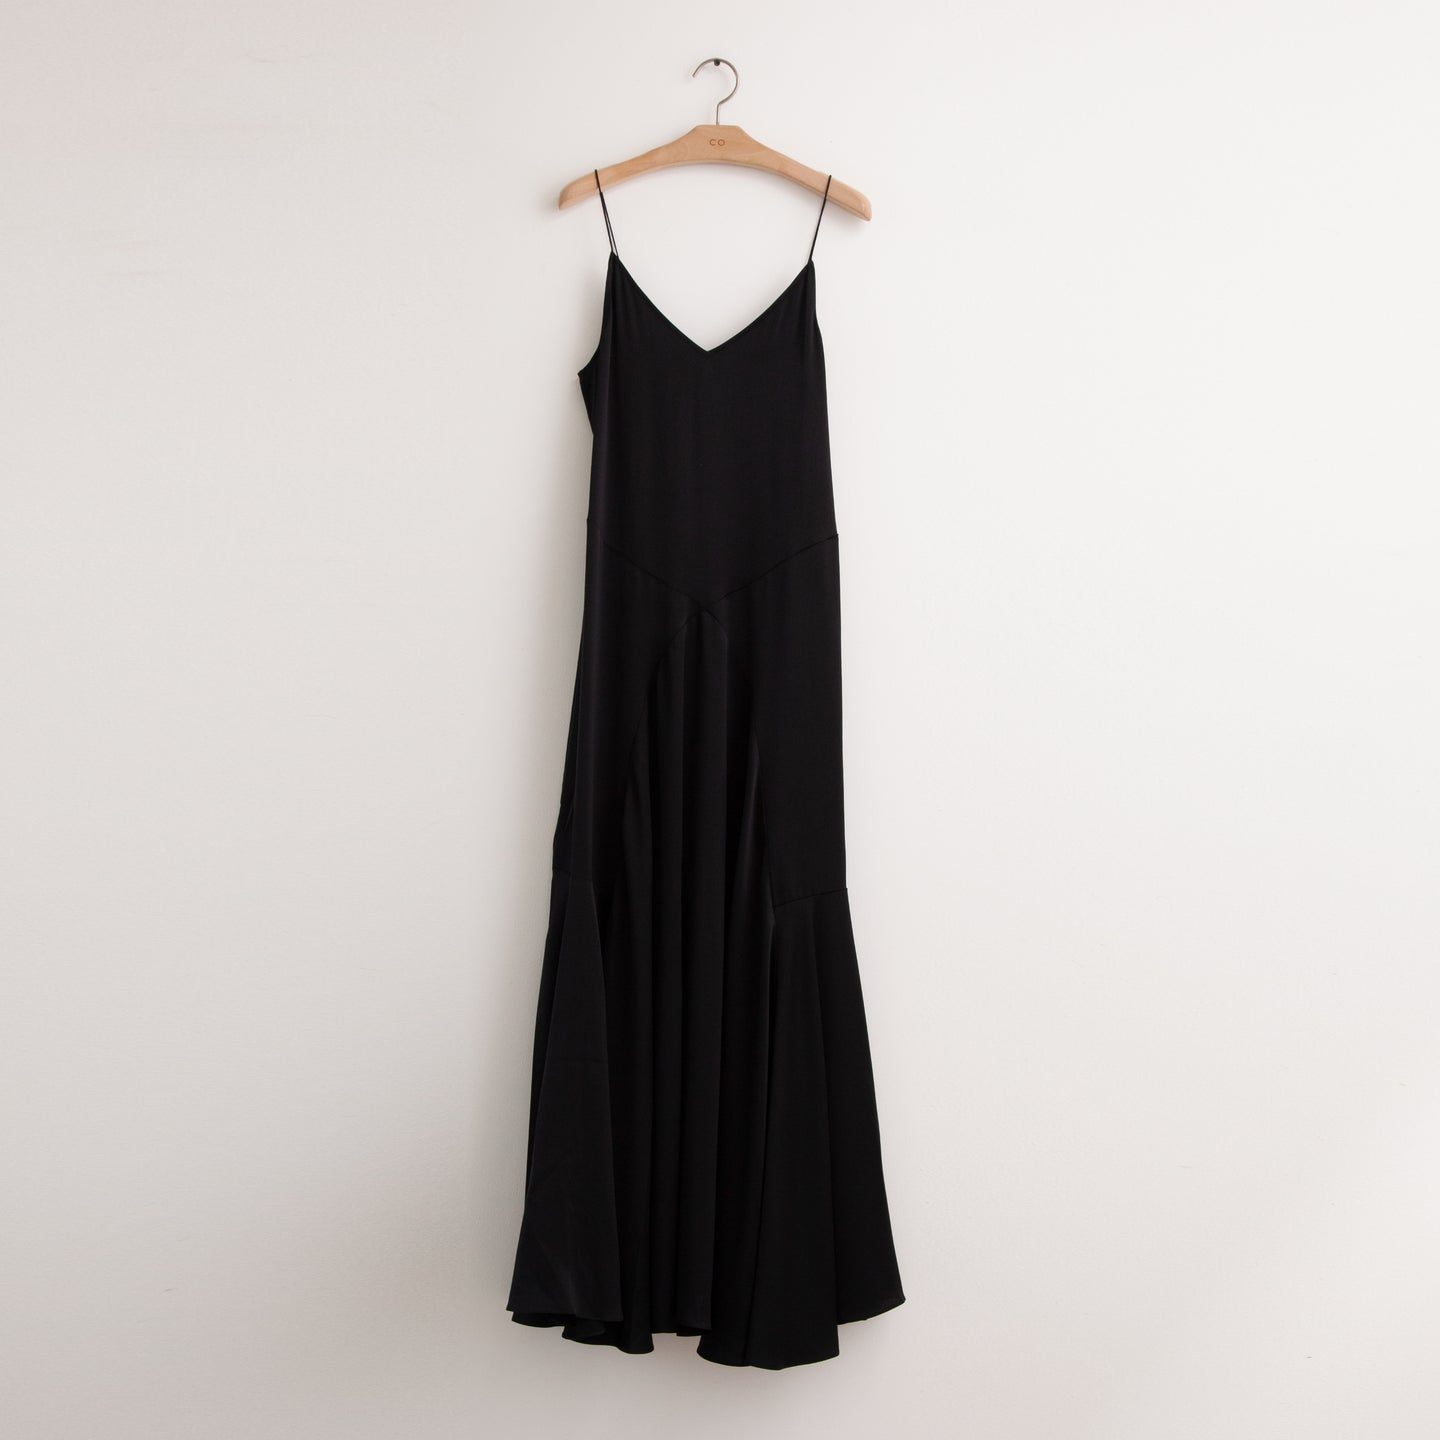 CO - Thin strap v neck maxi dress with ruched paneling detail in black stretch crepe